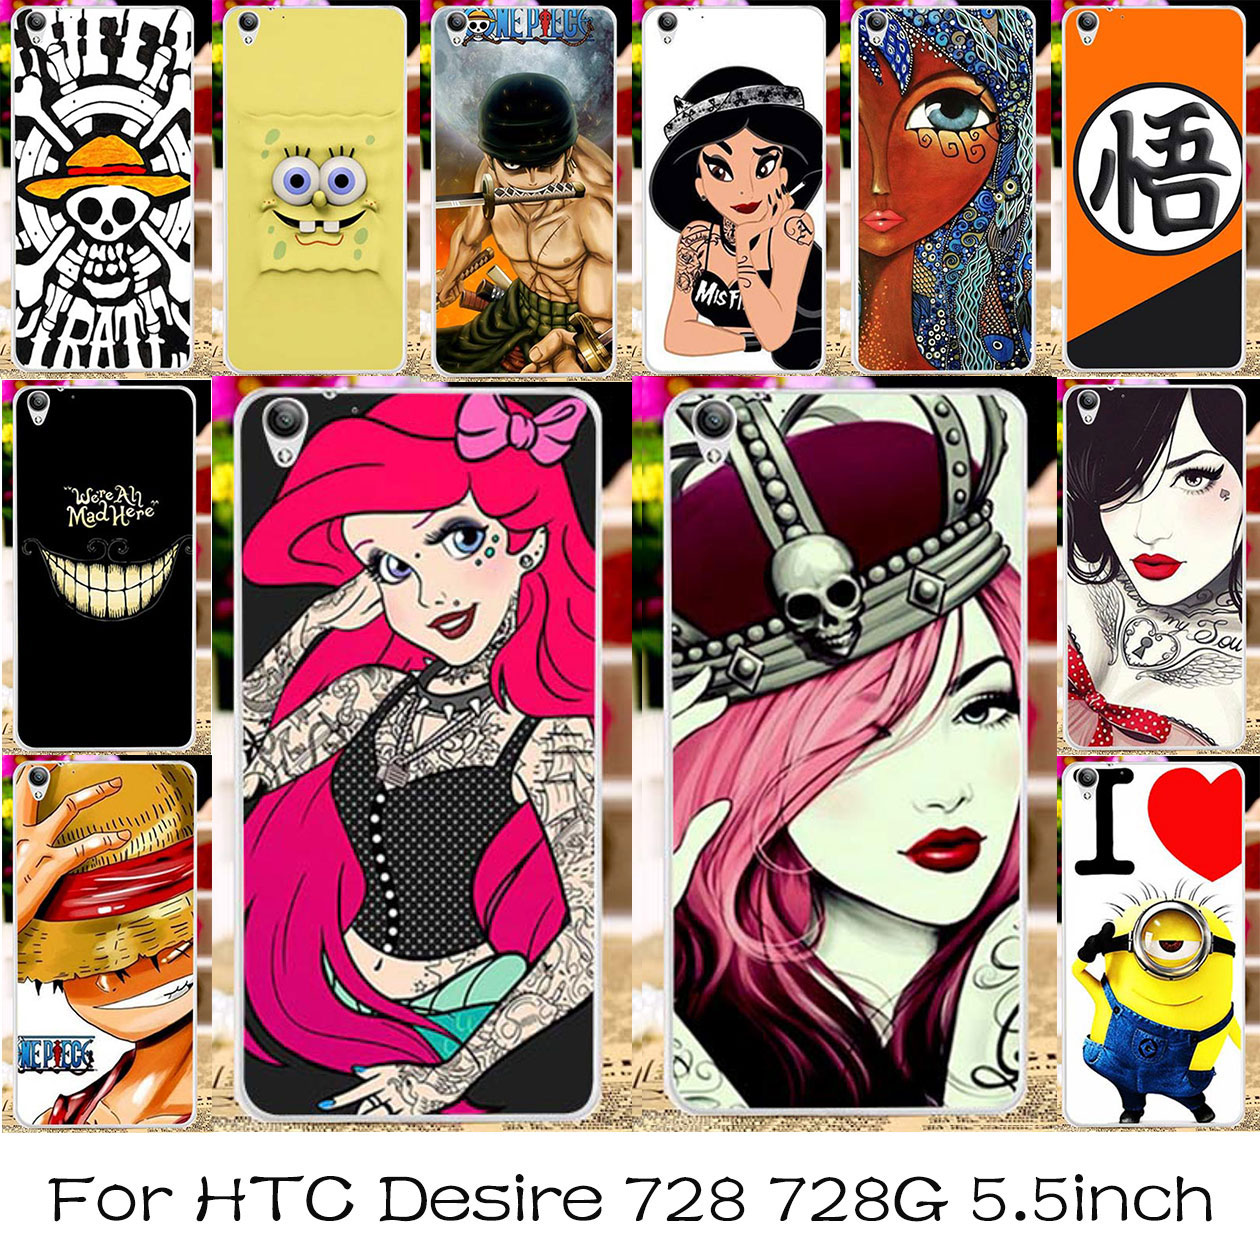 TAOYUNXI Silicone Plastic Phone Case For HTC Desire 728 728G Dual Sim D728T D728W Shell For HTC Desire 728 Bag Cover Housing